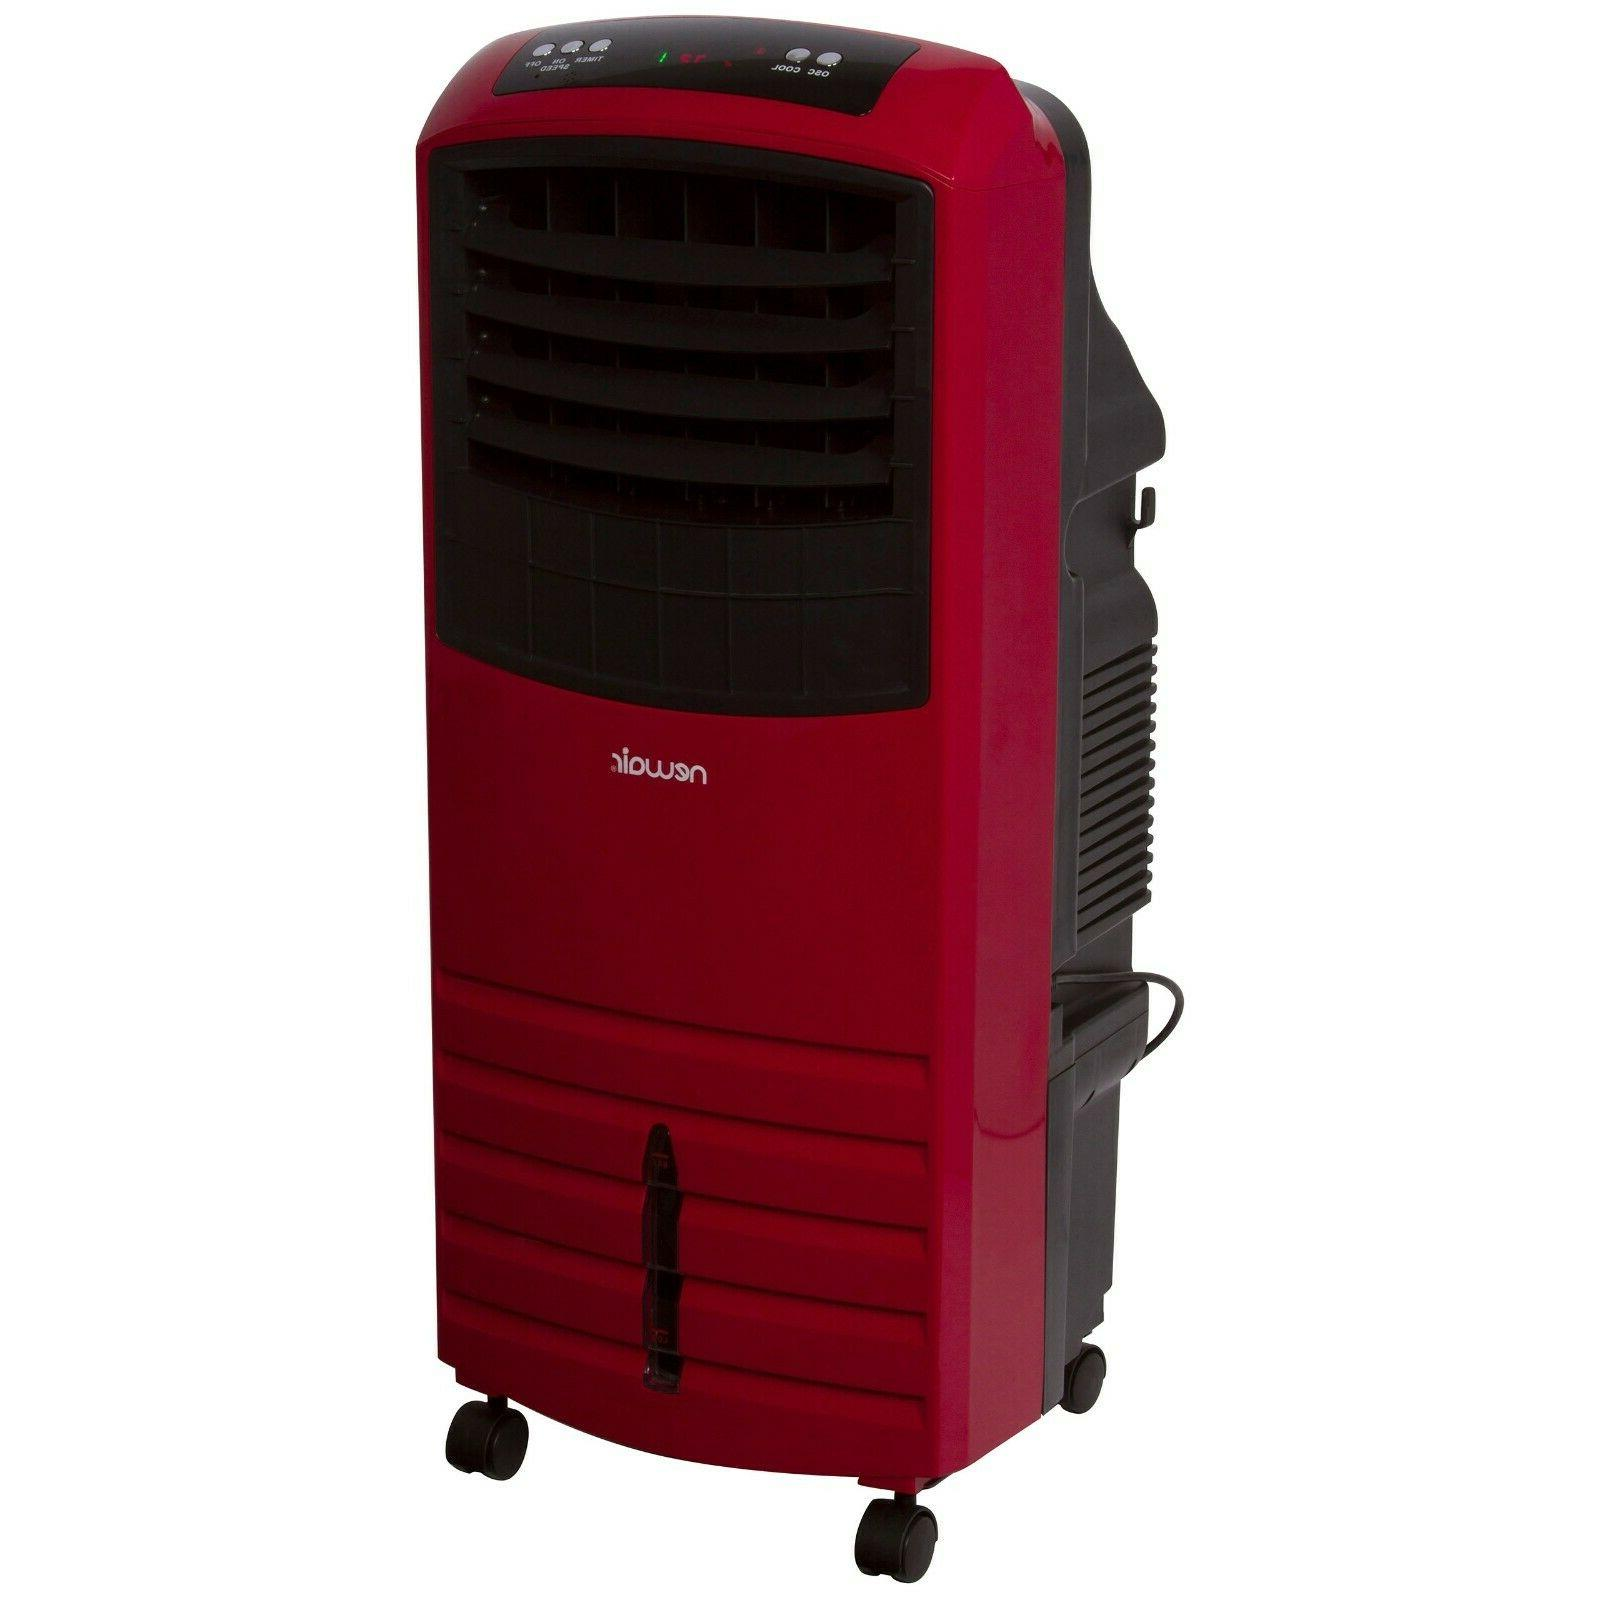 Dayton Ducted Evaporative Cooler, 6800 cfm, 1/2HP - 4RNP6